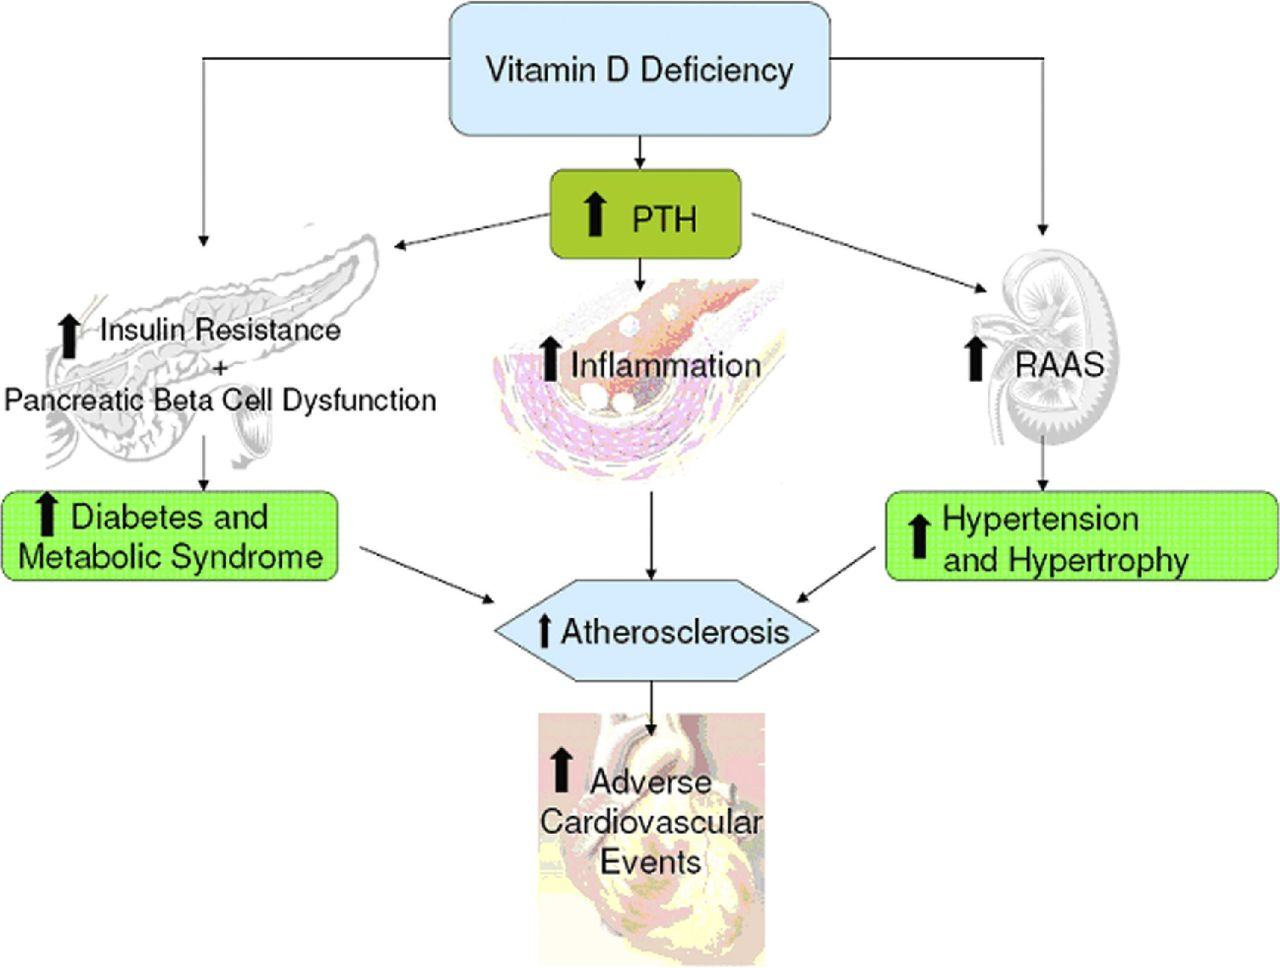 Vit D and inflammation.jpg